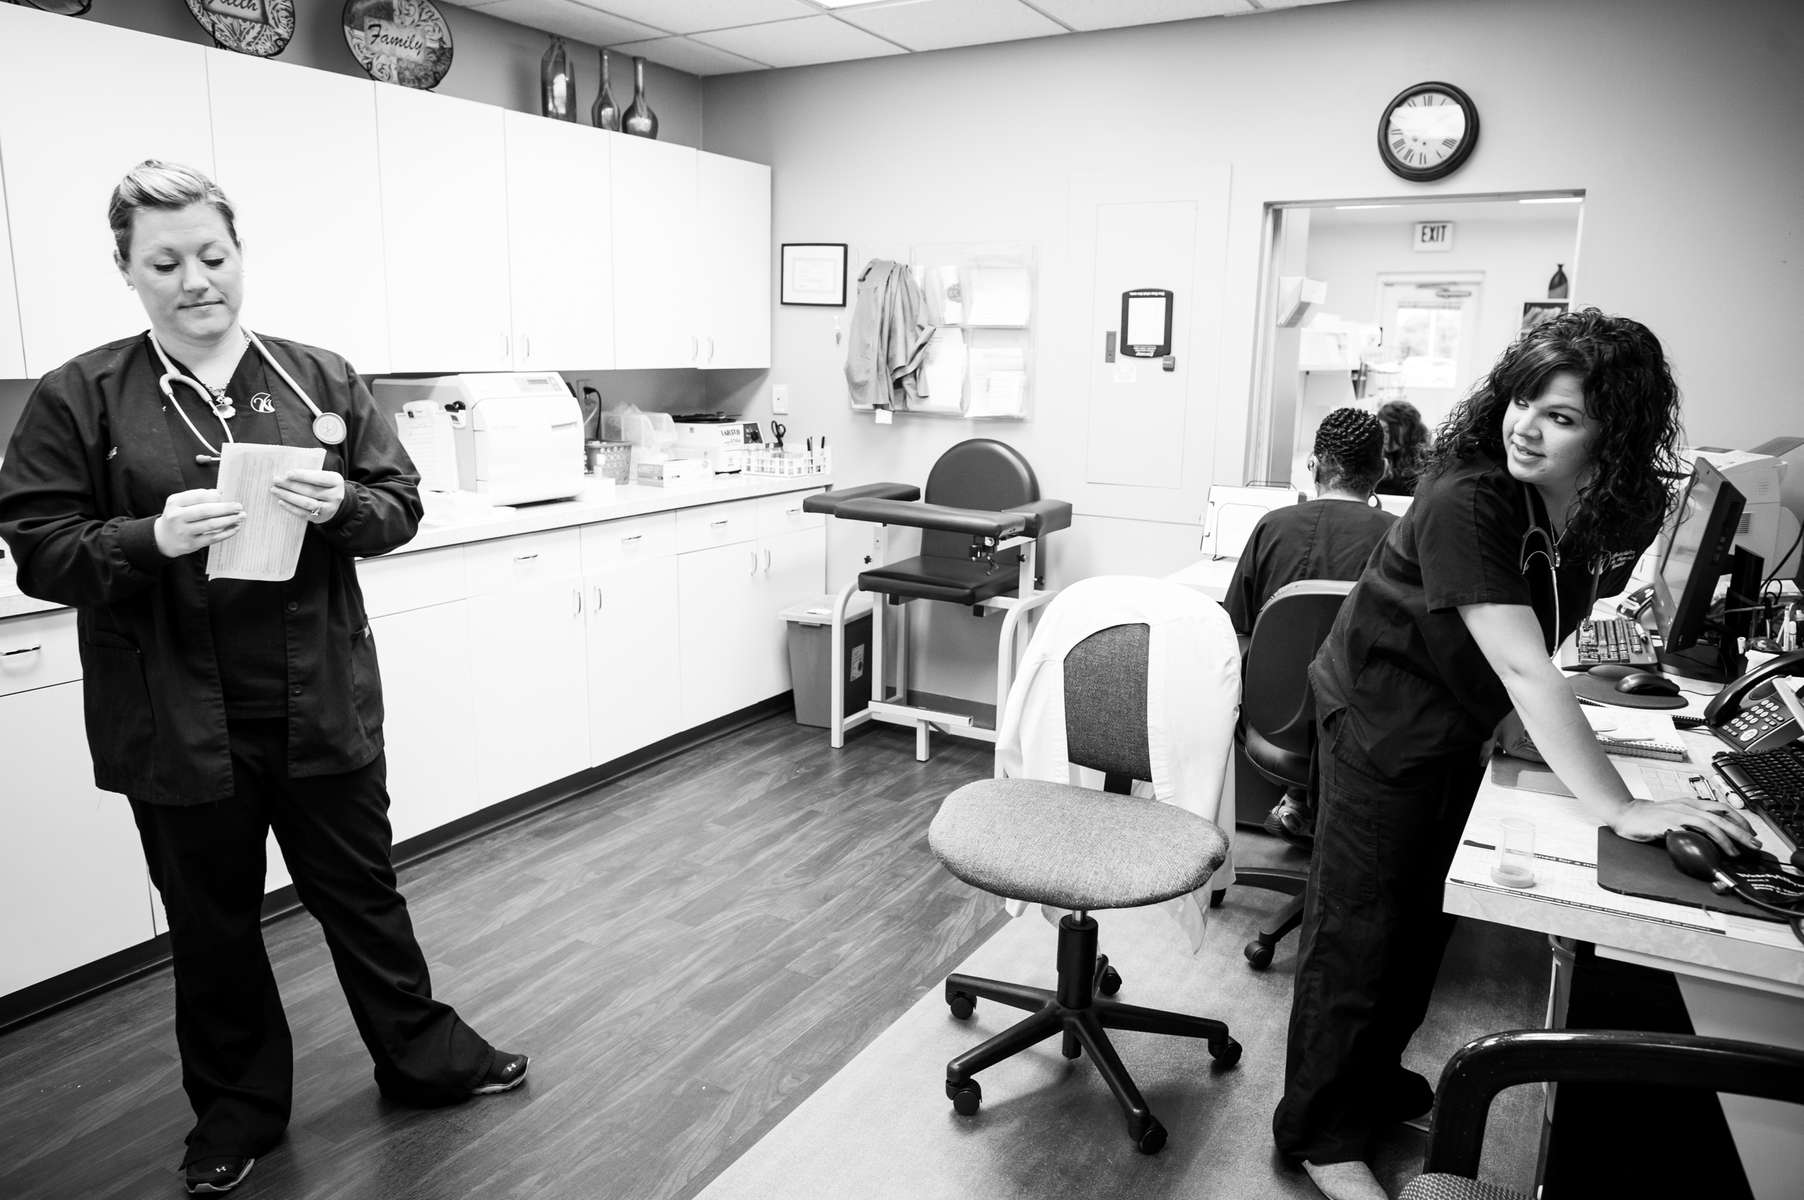 Caitlin Bell at work as a medical assistant in an OB/GYN office in Chattanooga, TN.